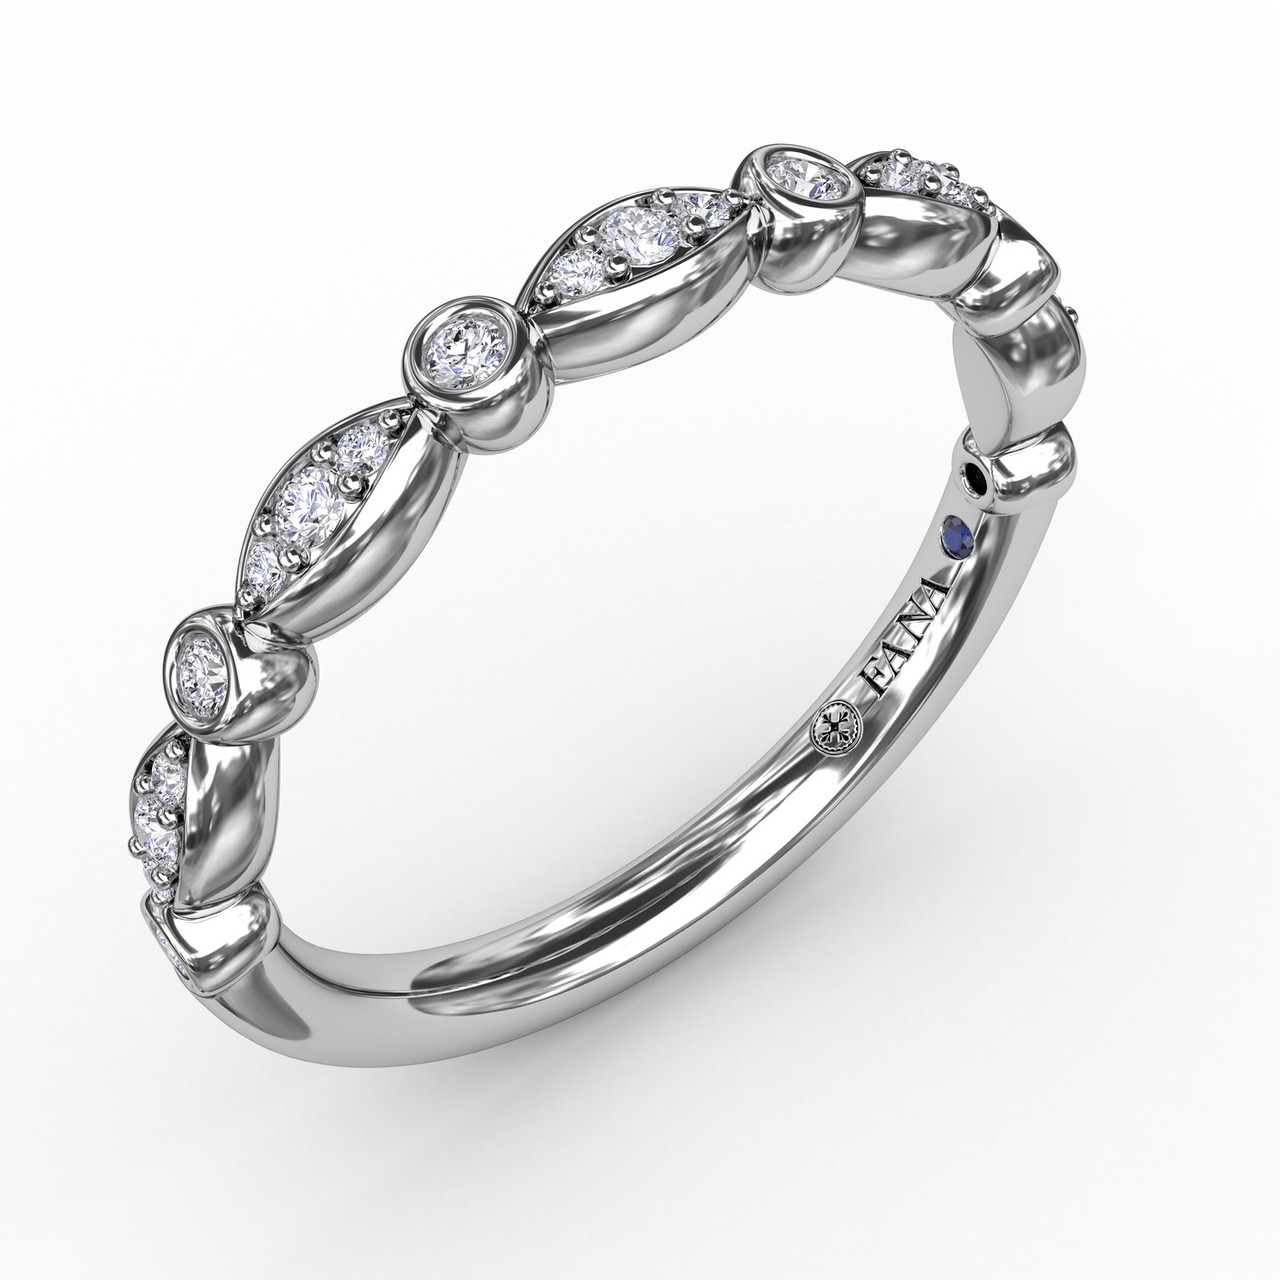 Marquise Diamond Band - Classic and elegant, our marquise shape diamond band embodies timelessness and tradition.  Perfect for stacking, this band is available in Platinum, 18KT & 14KT gold and can be customized through an Authorized Fana Retailer.